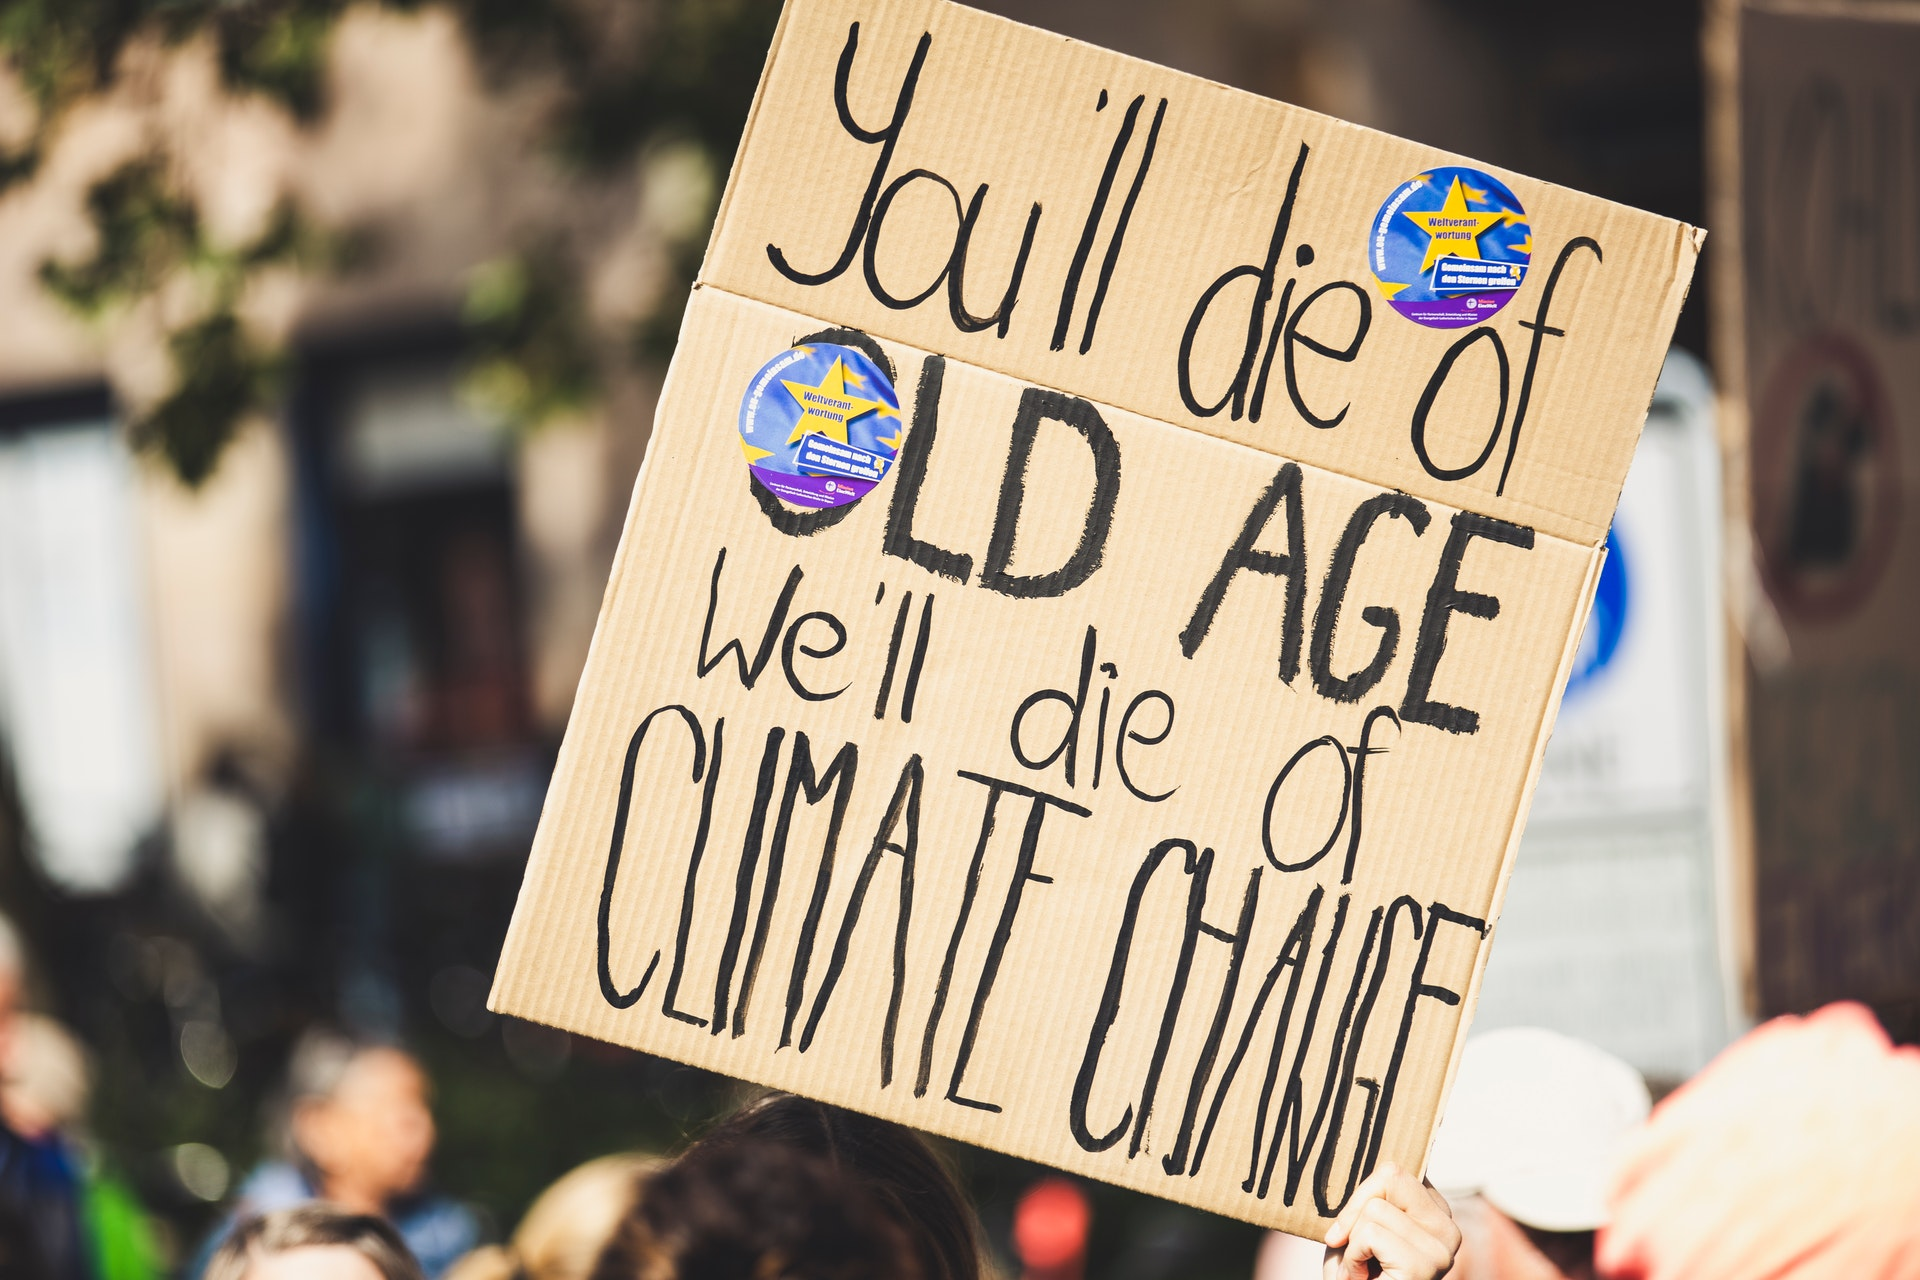 climate protest poster